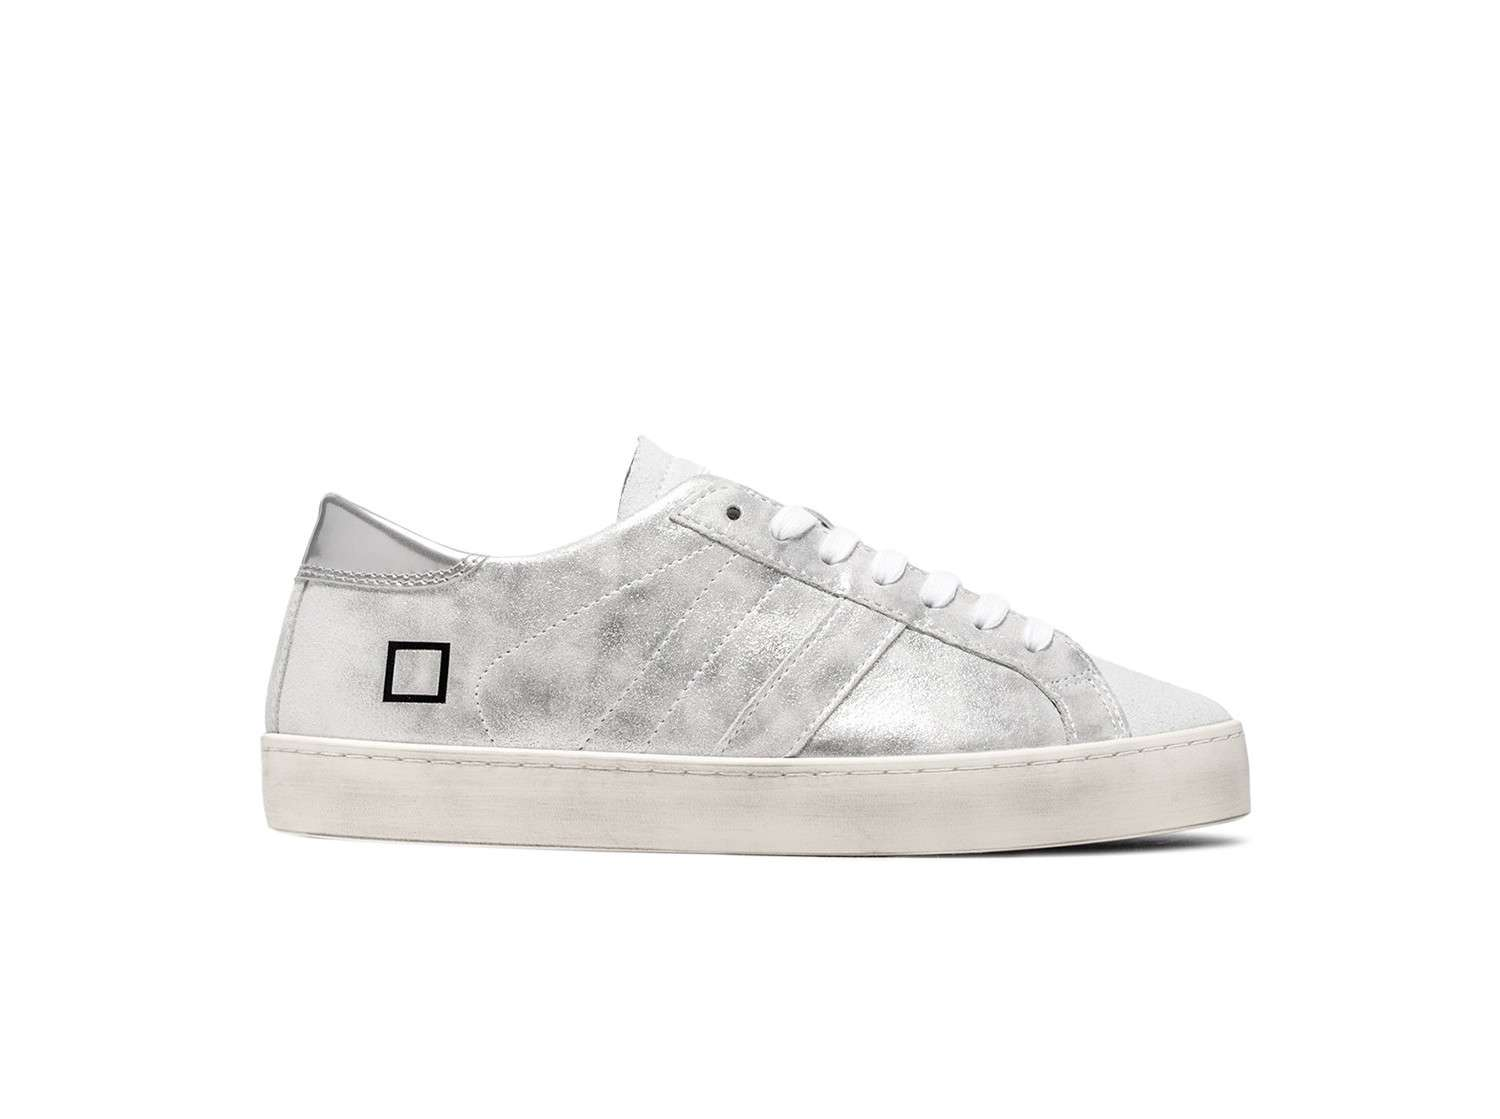 https://www.parmax.com/media/catalog/product/a/i/AI-outlet_parmax-sneaker-donna-Date-W301-A.jpg